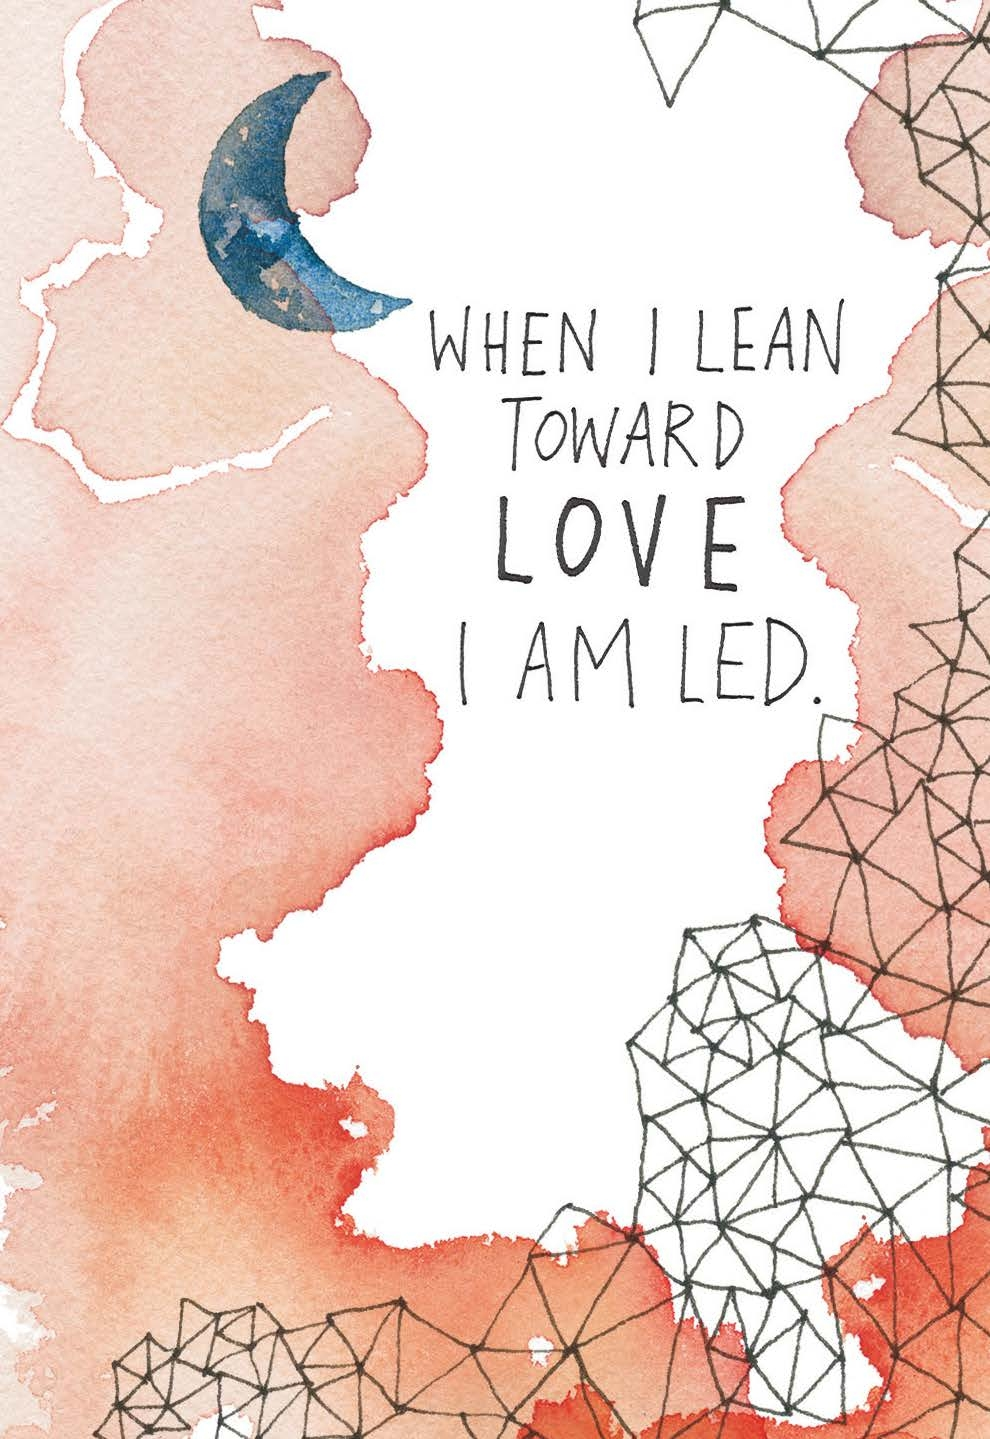 When I lean toward love, I am led | The Universe Has Your Back card deck